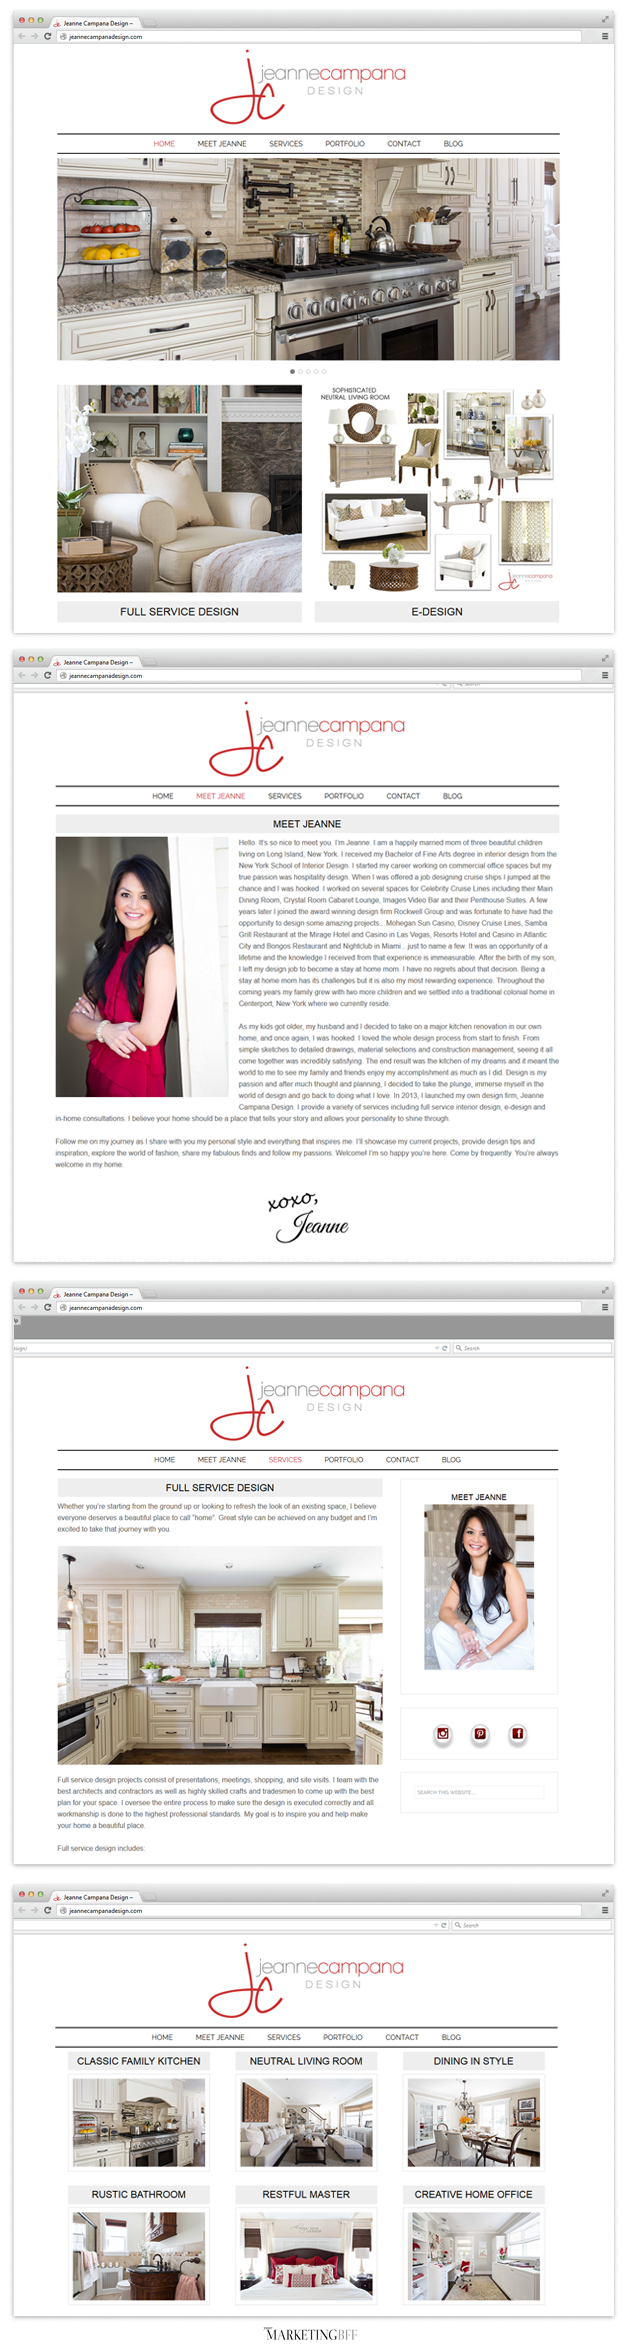 Your Marketing BFF website design_ JeannaCampanaDesign